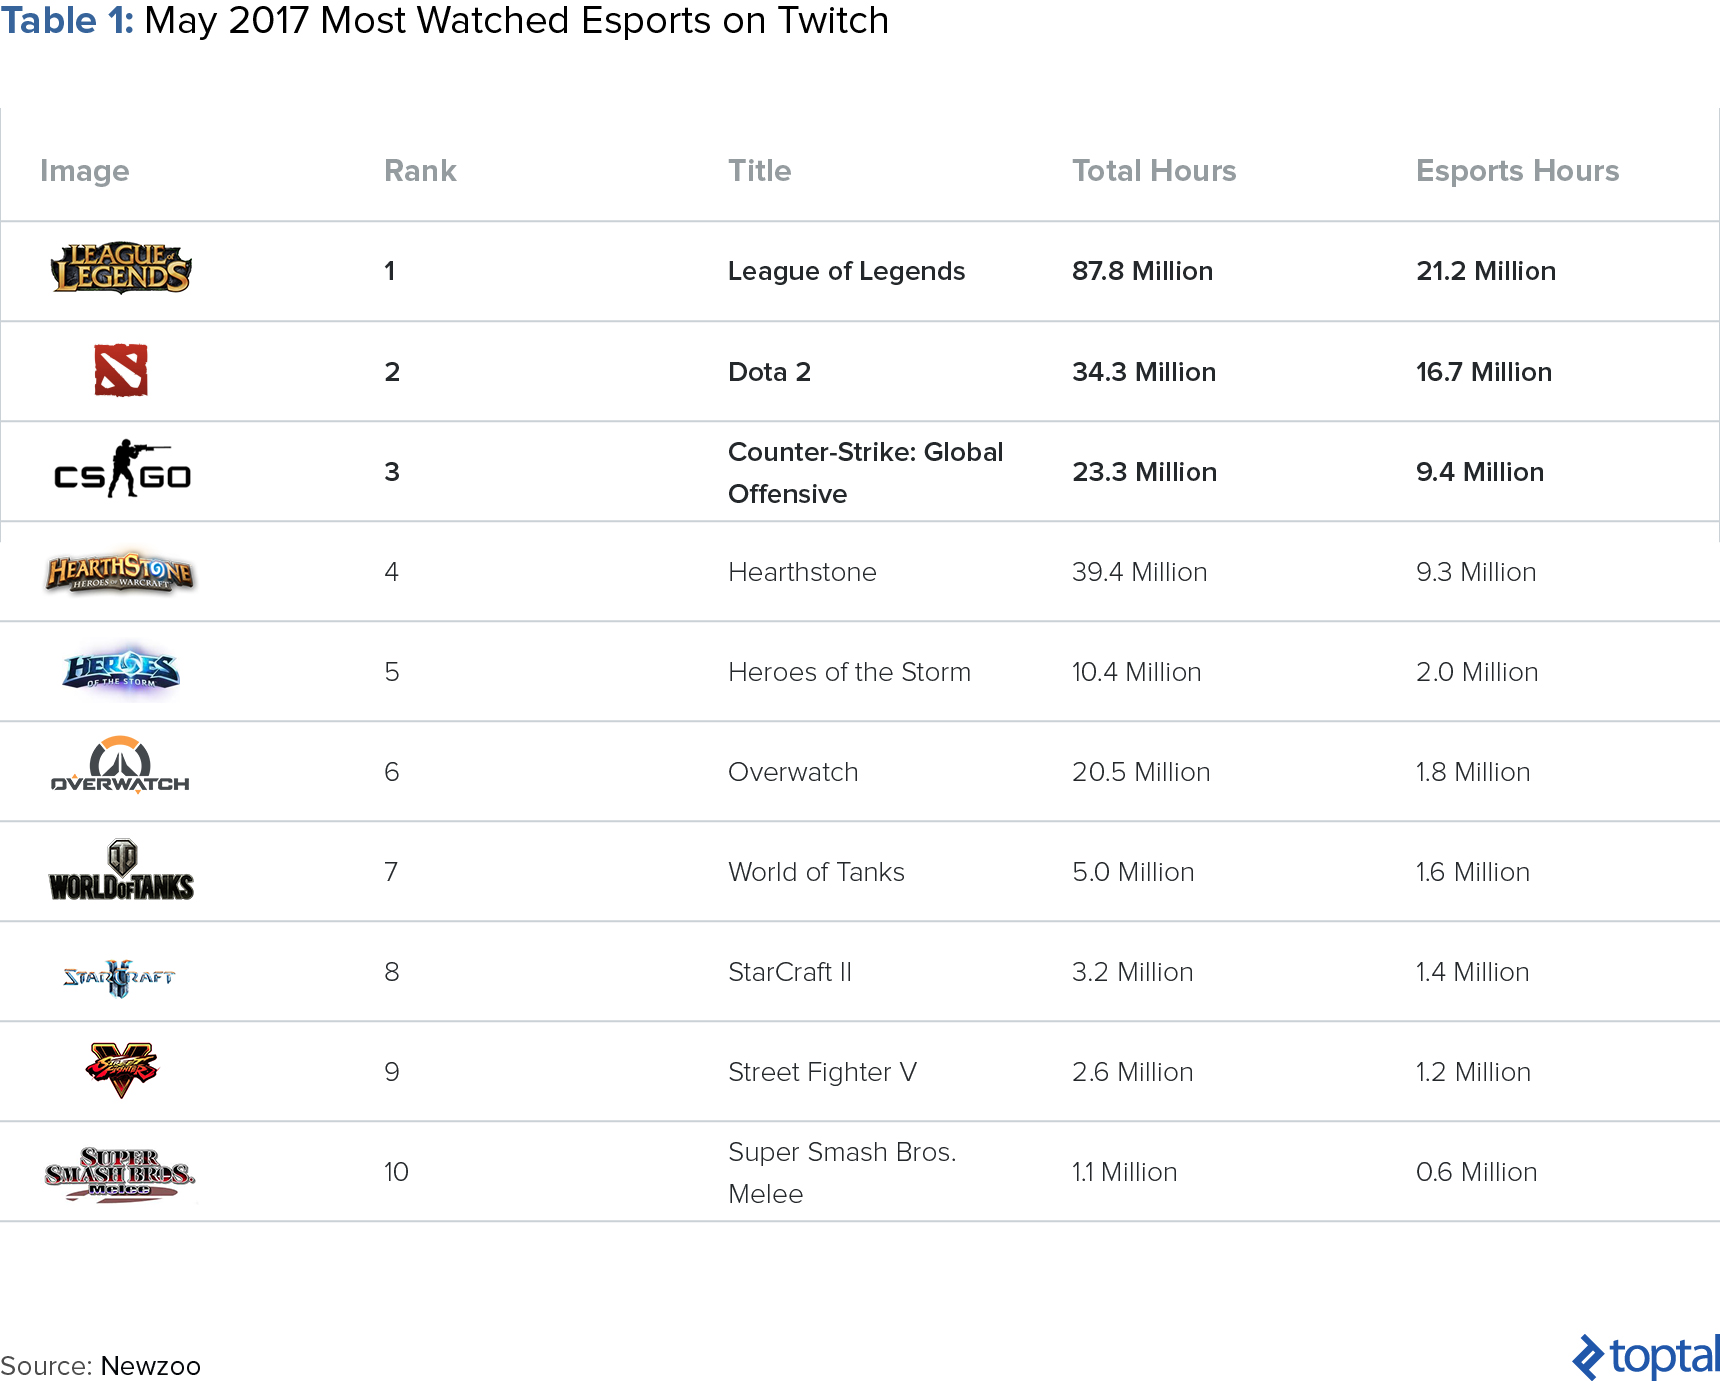 Table 1: May 17 Most Watched Esports on Twitch